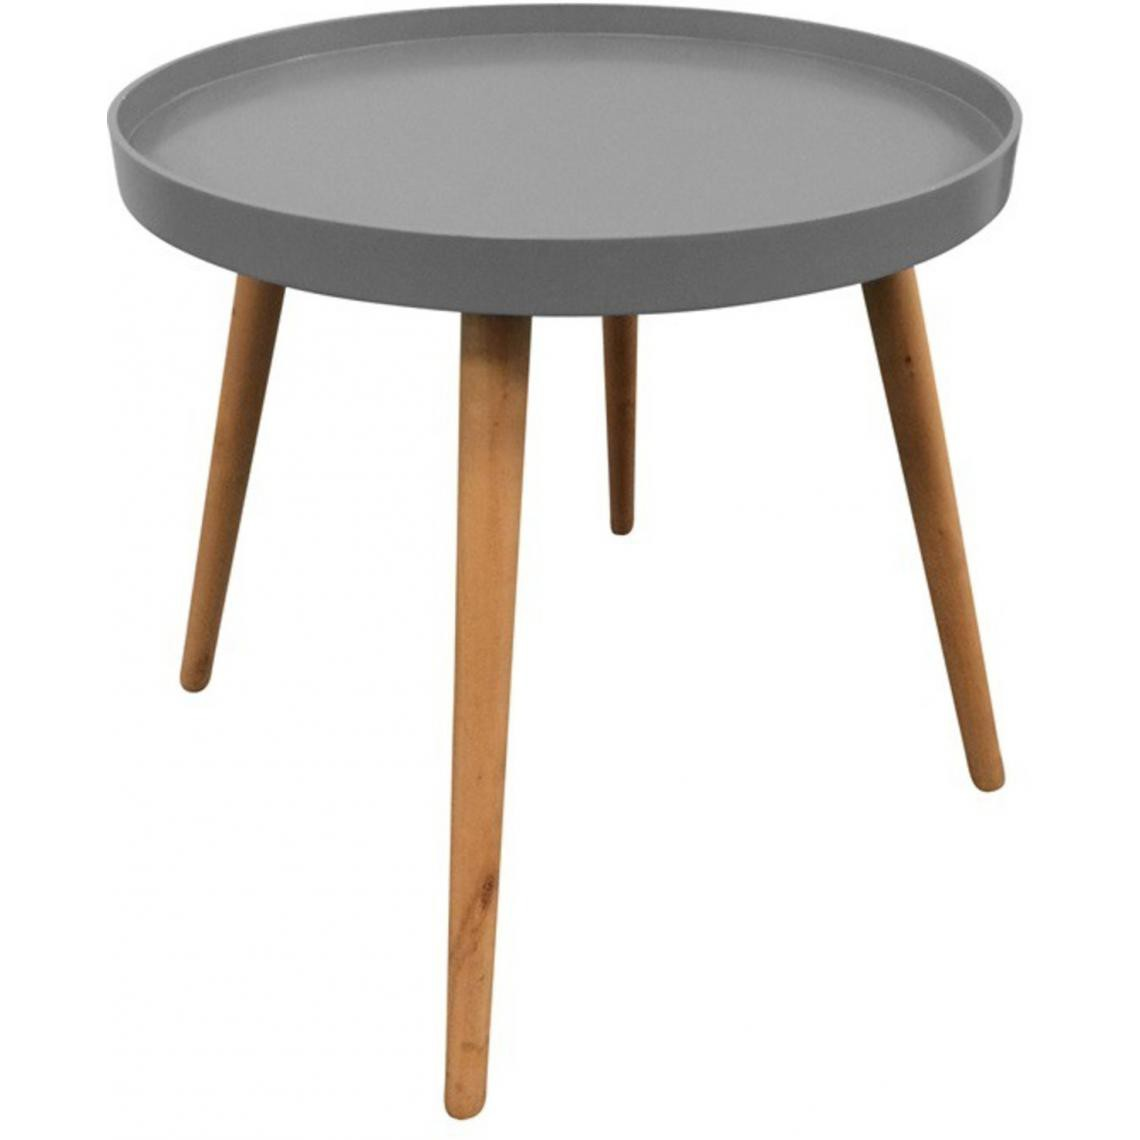 3S. x Home Table Ronde Plateau Gris DEER